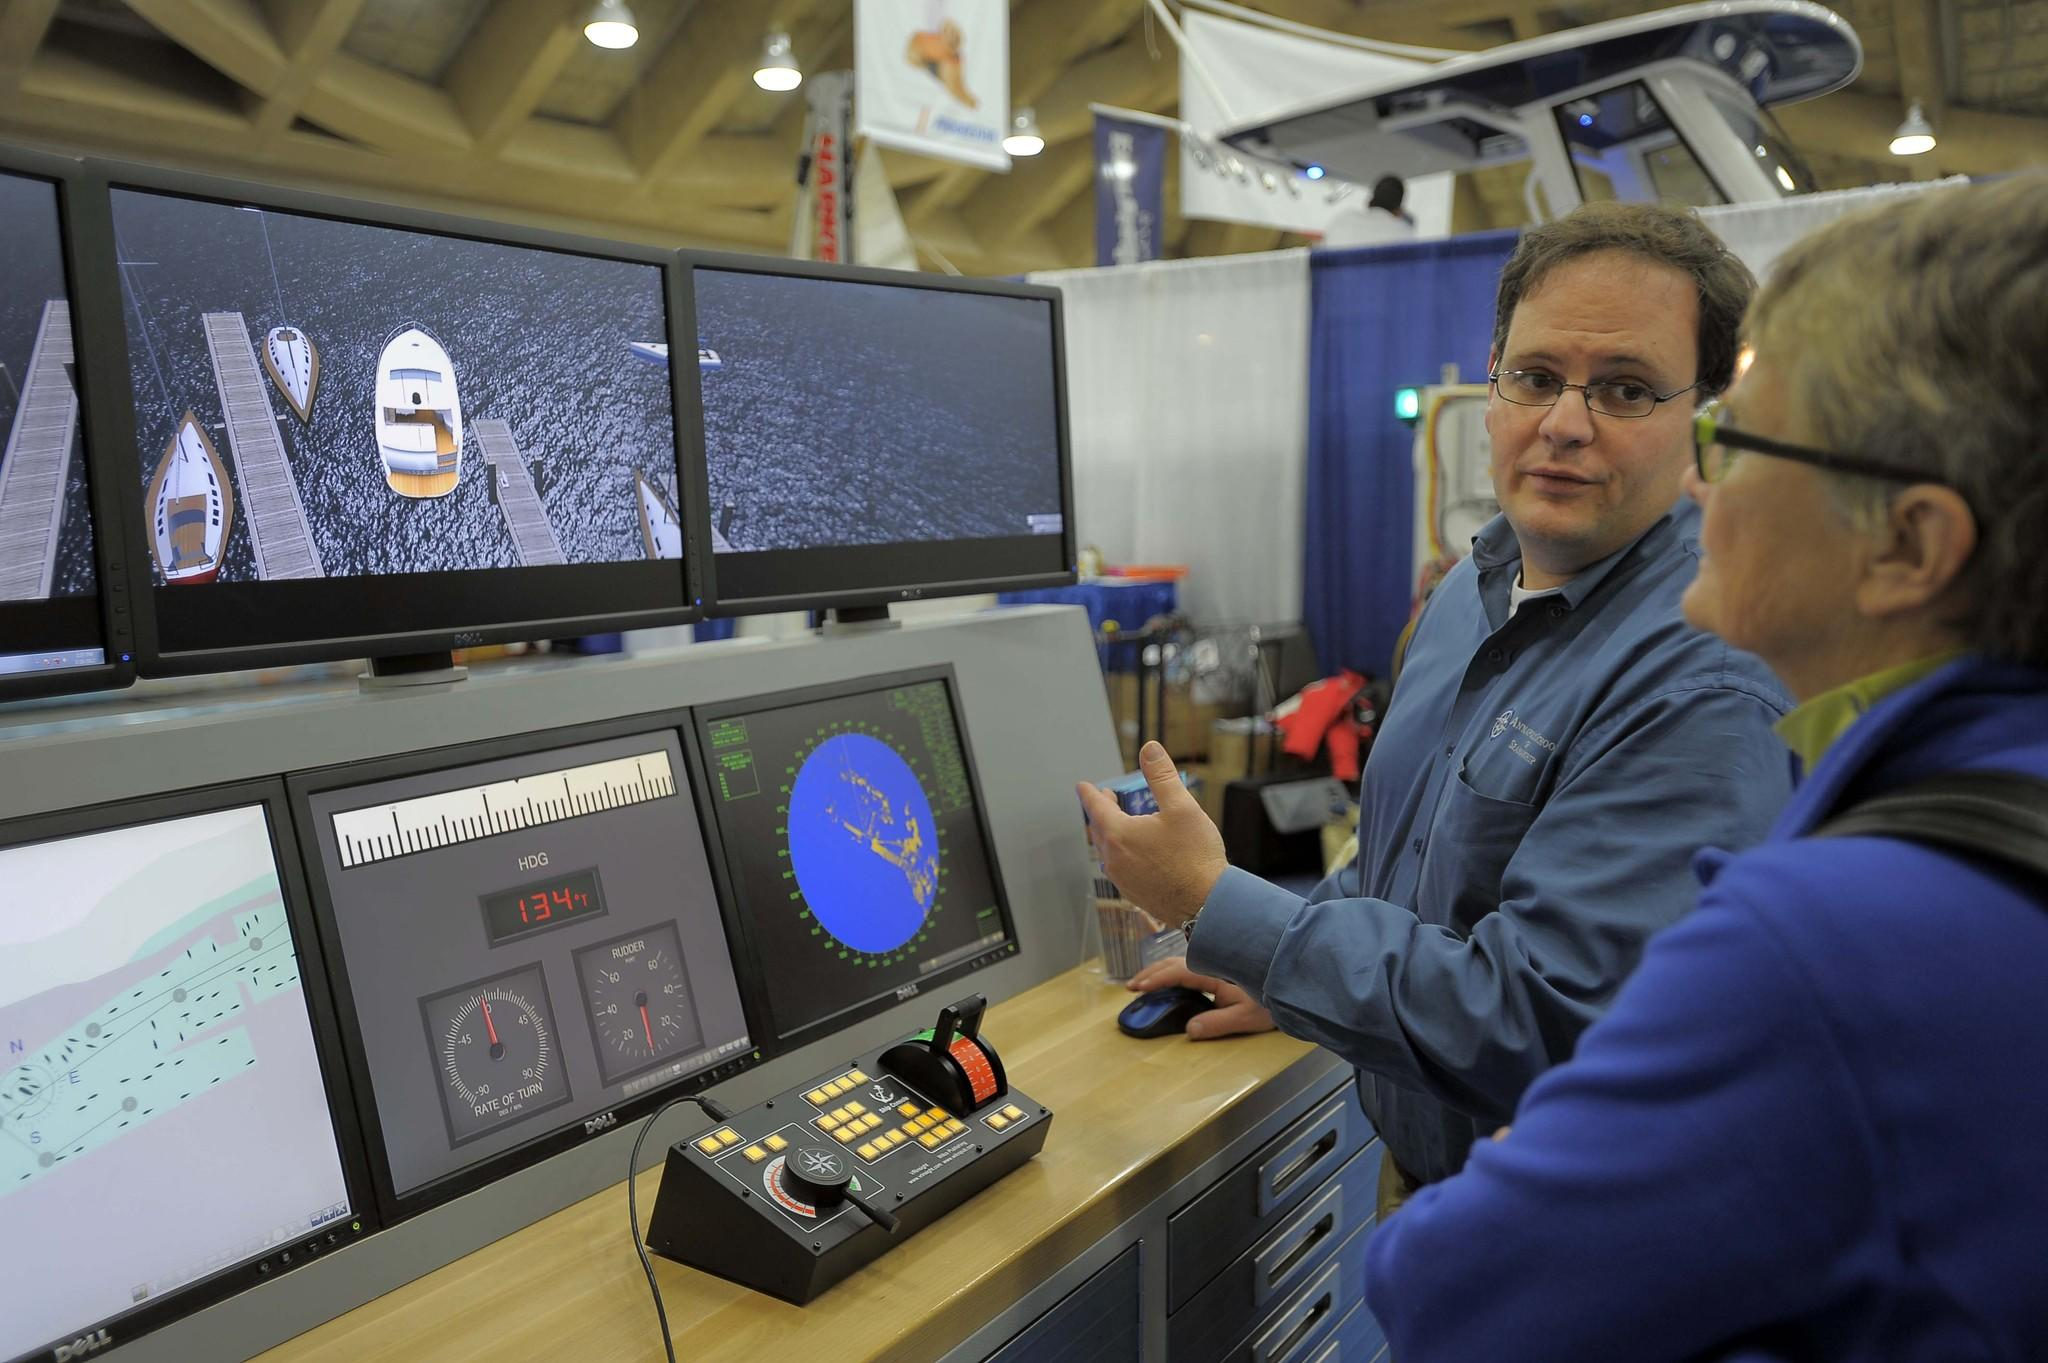 Capt. John Martino, founder and president of the Annapolis School of Seamanship, shows an alternate view of a Coast Guard vessel to Jody Schroath of Annapolis at the Baltimore Convention Center in 2012.